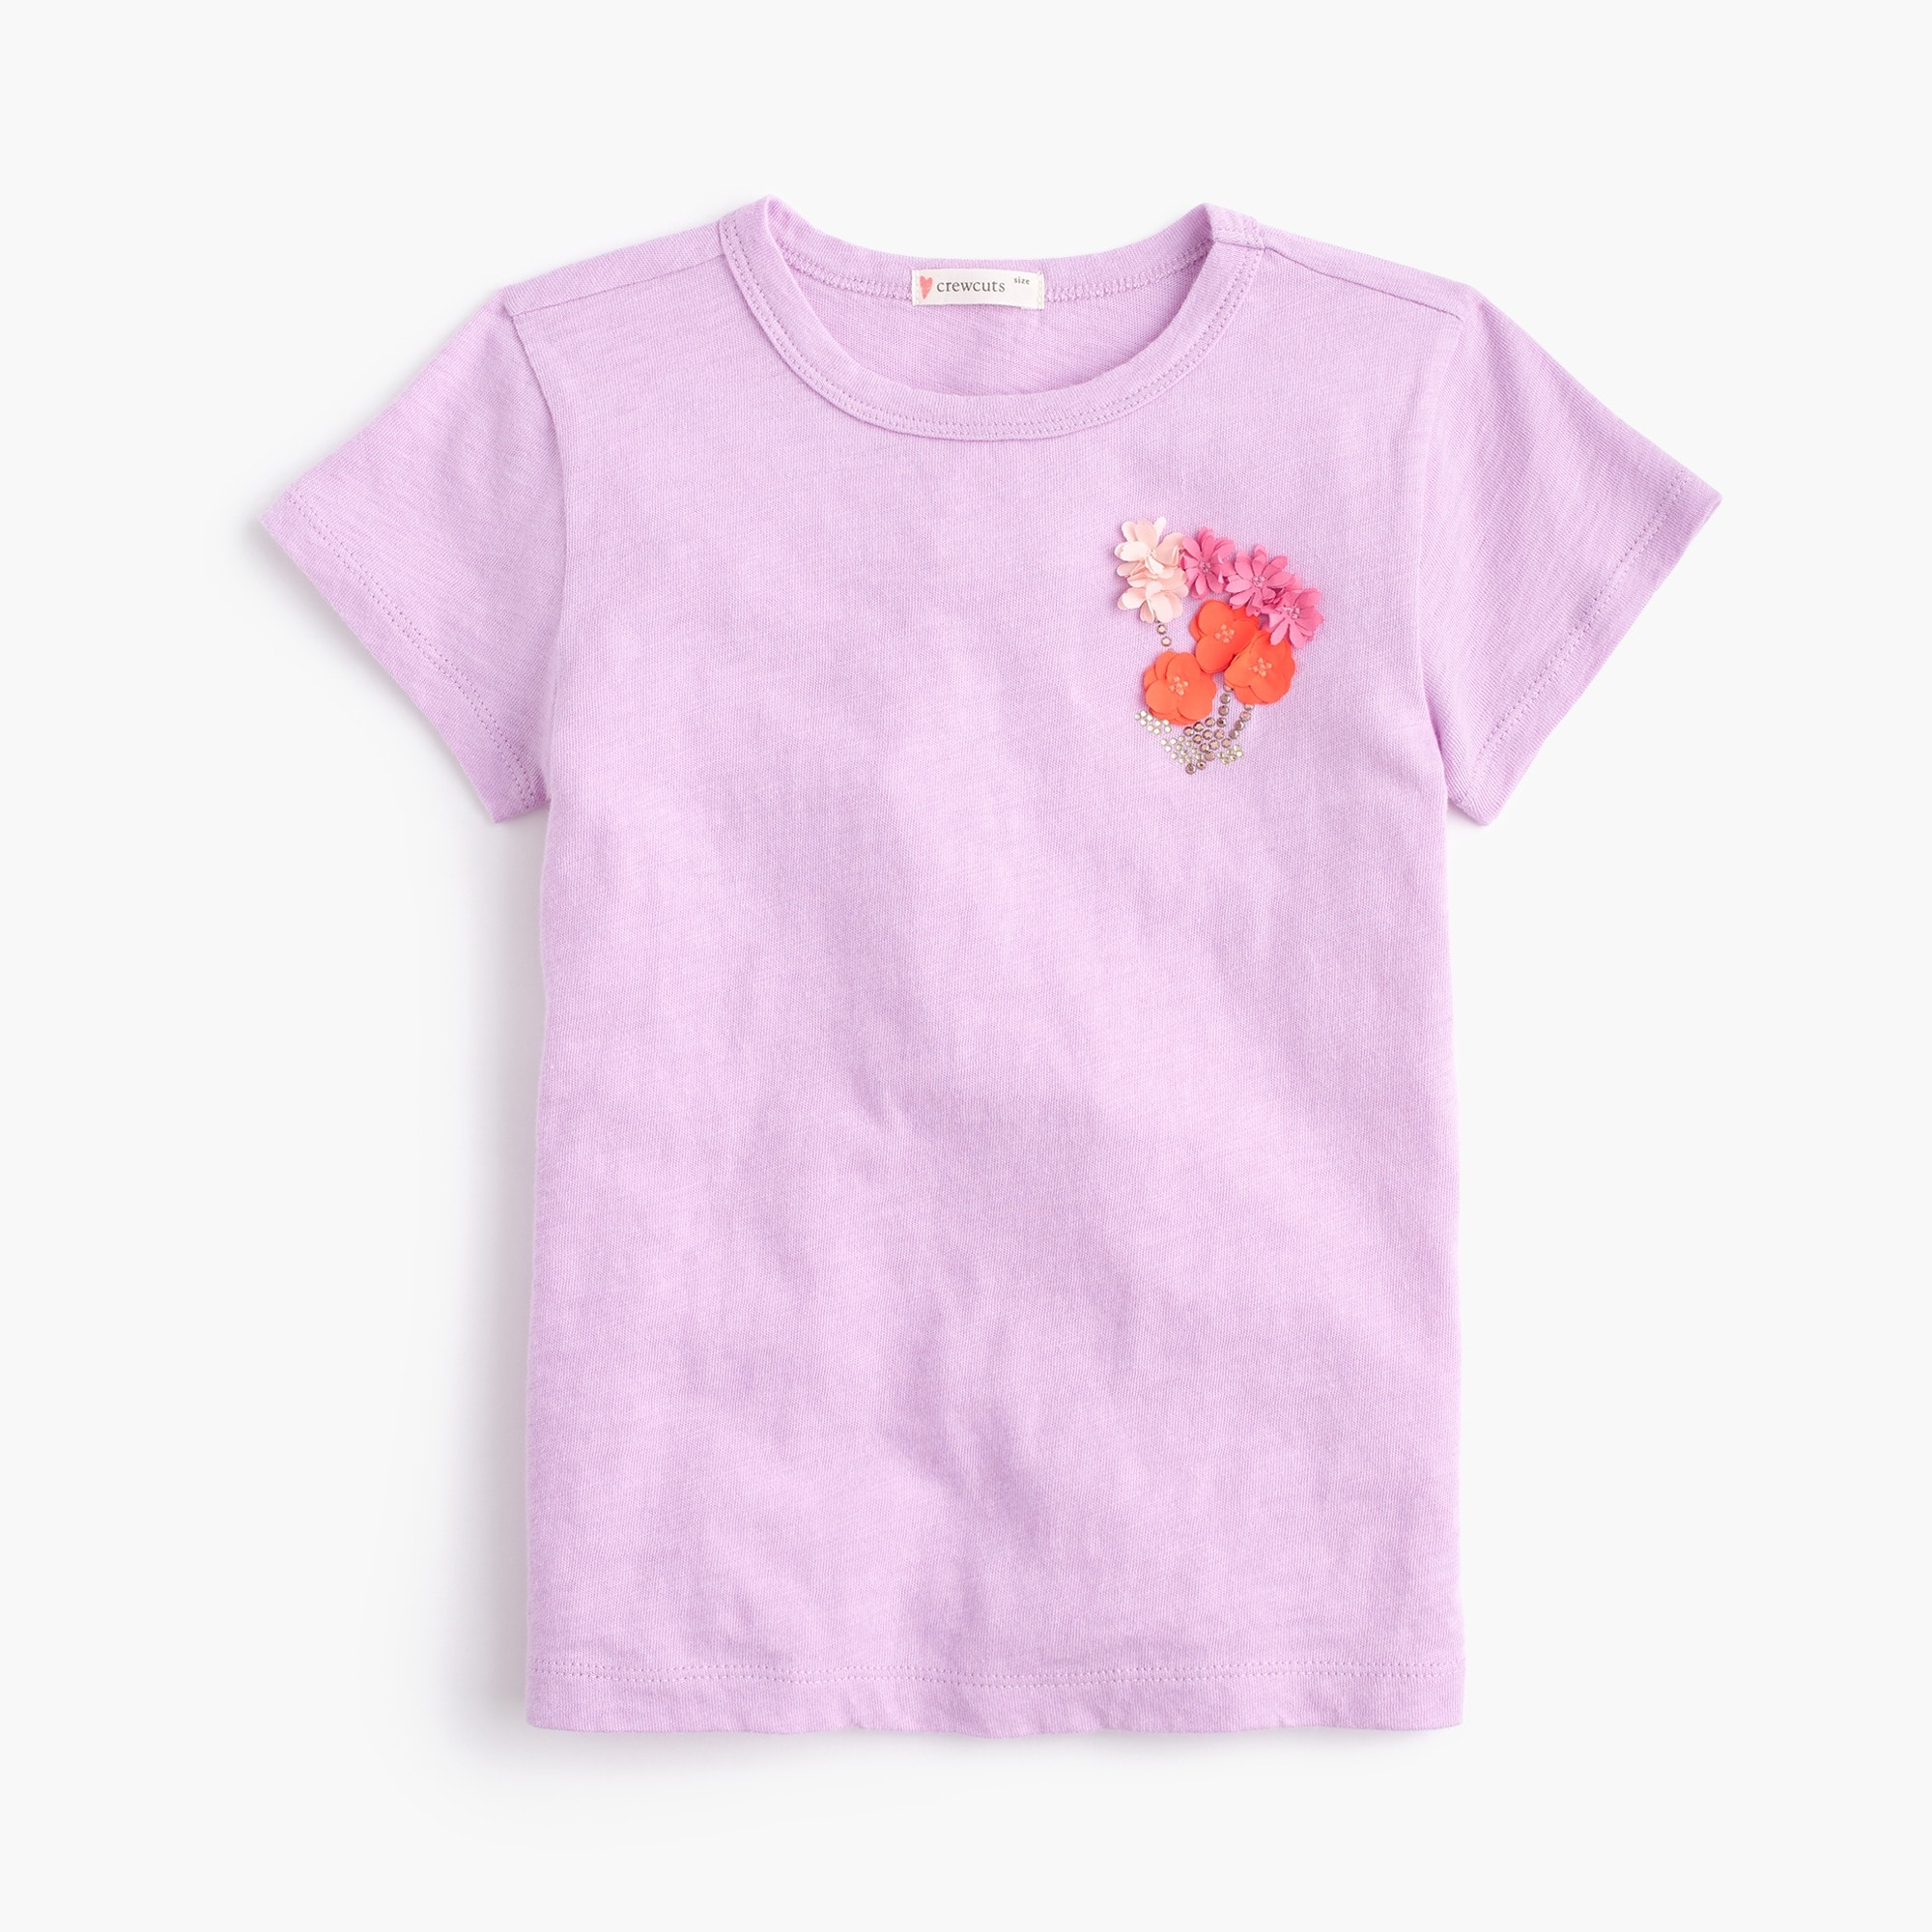 girls' embellished flower t-shirt : girl short-sleeve t-shirts